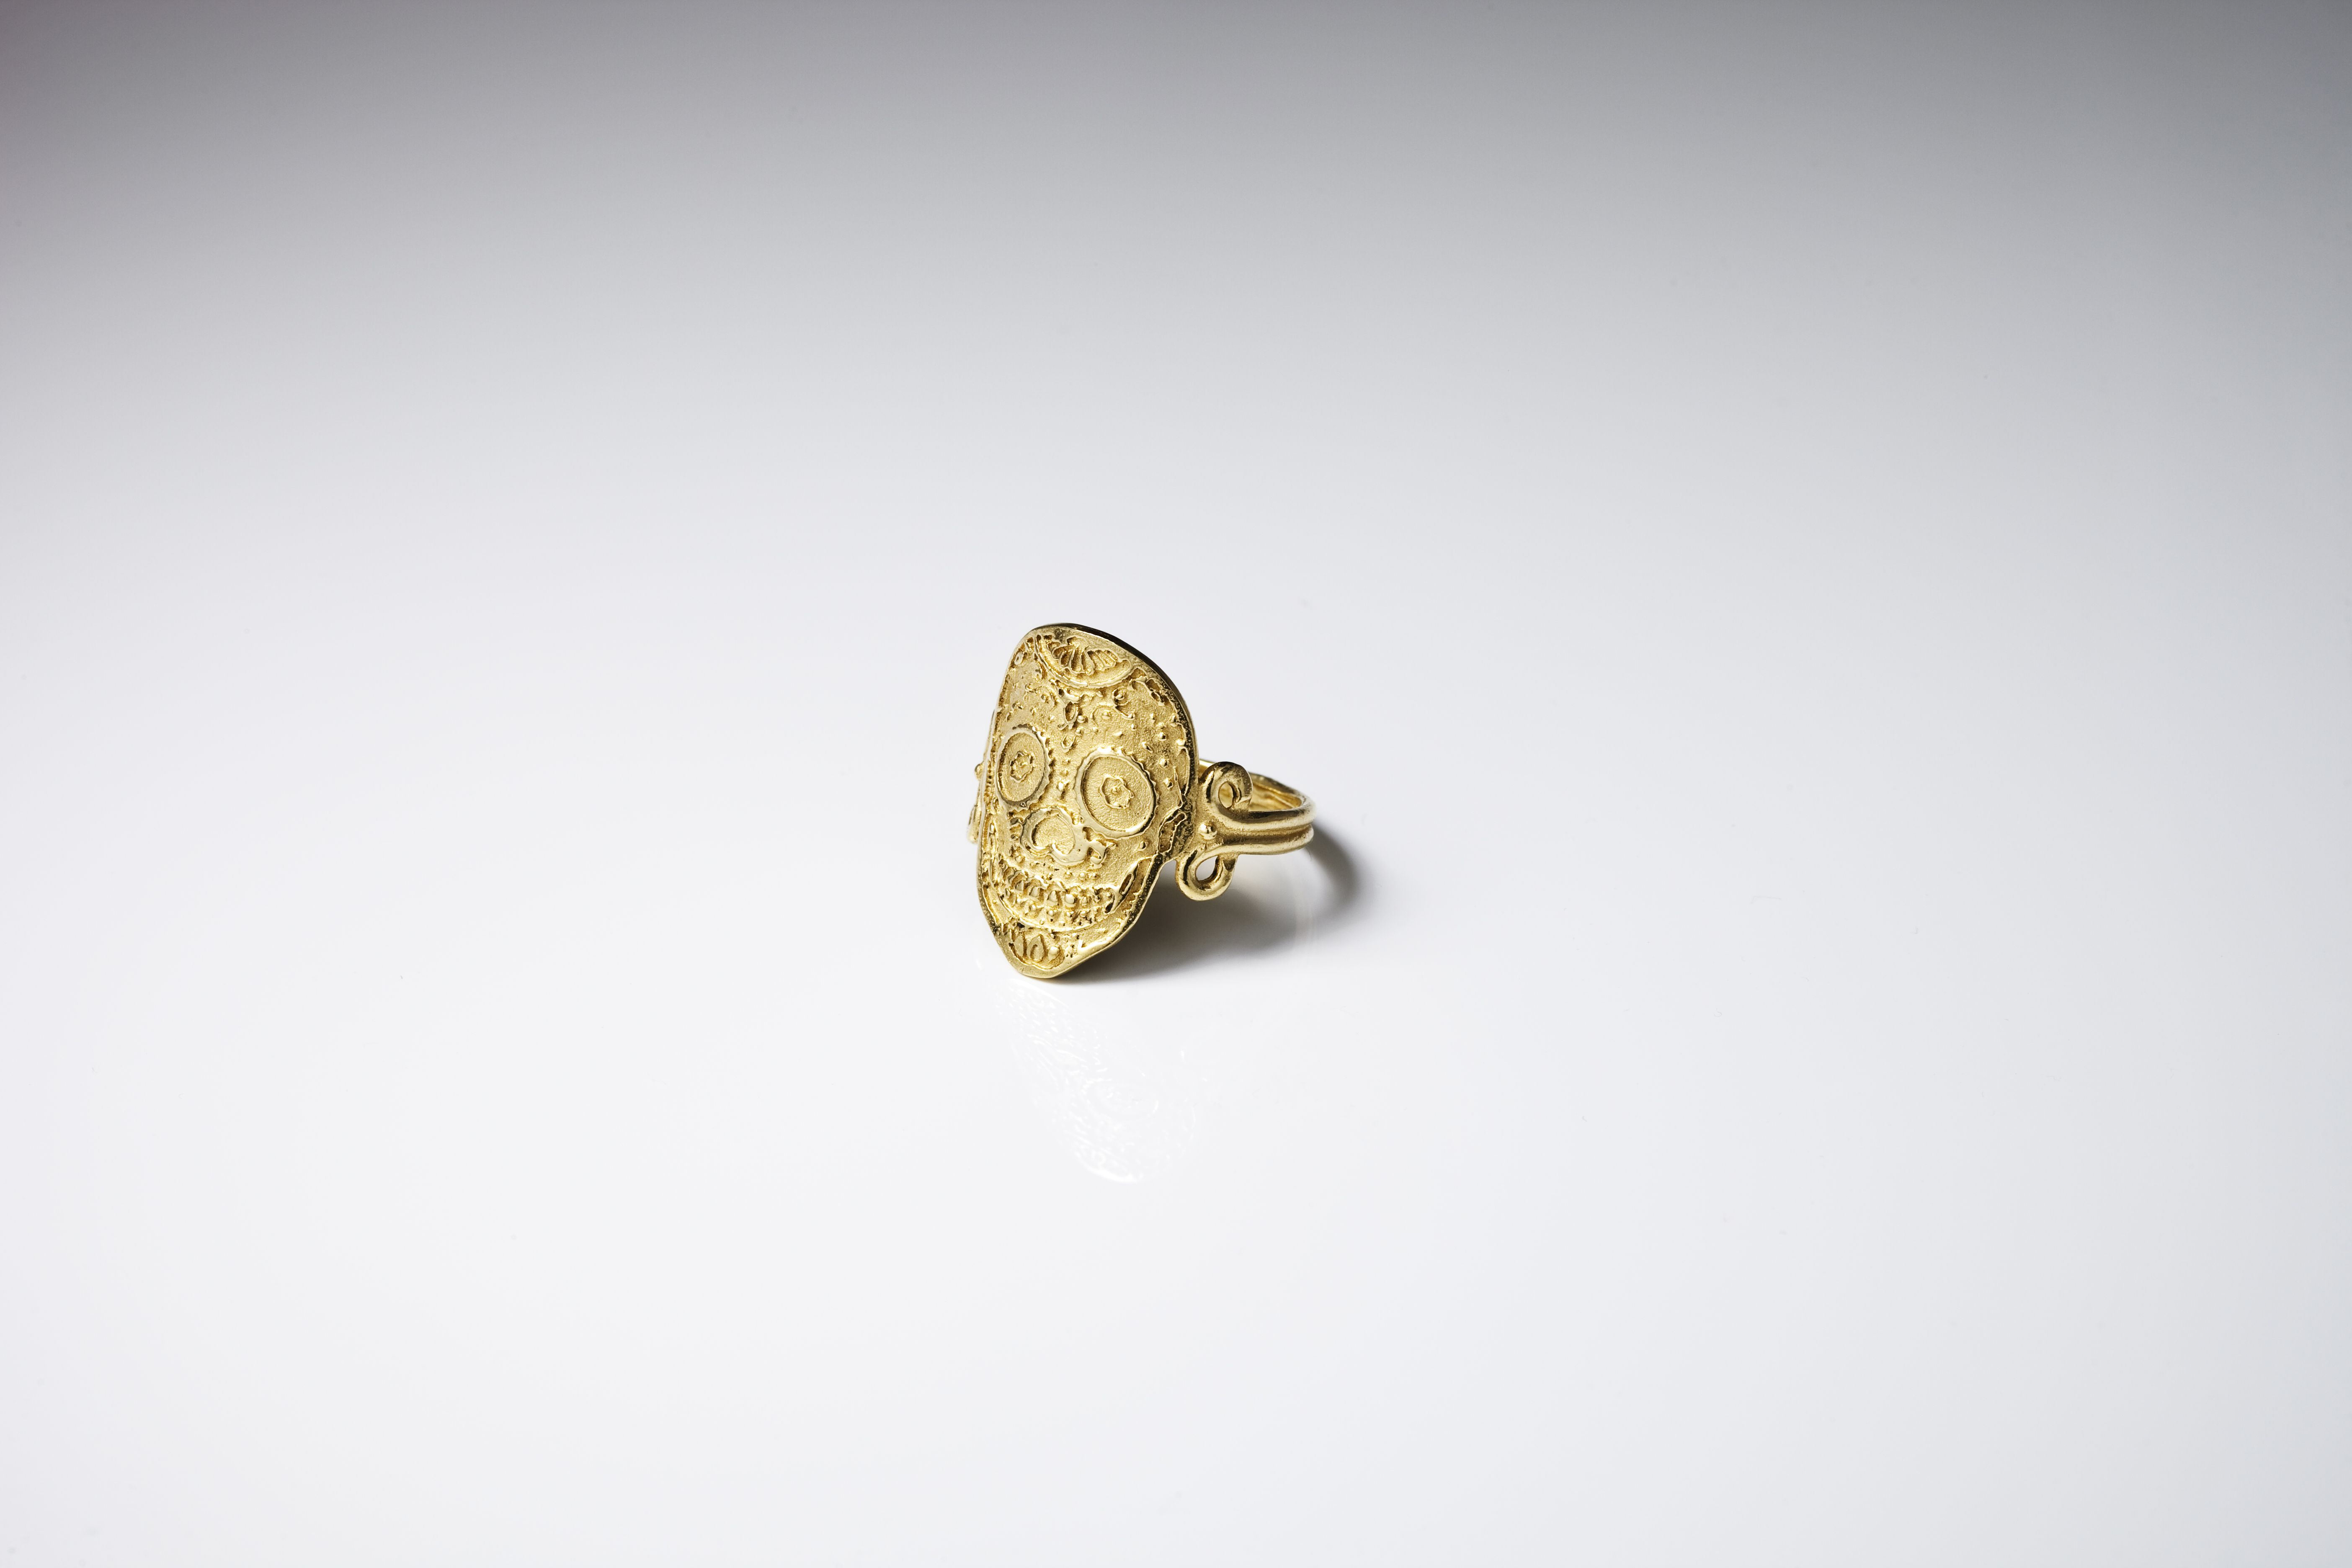 #Ring #Vermeil #Vermeilring #Skull #Mexicanskull #Bague #Corpuschristi #Bijoux #Jewelry #Tetedemortmexicaine Click on the image to see more